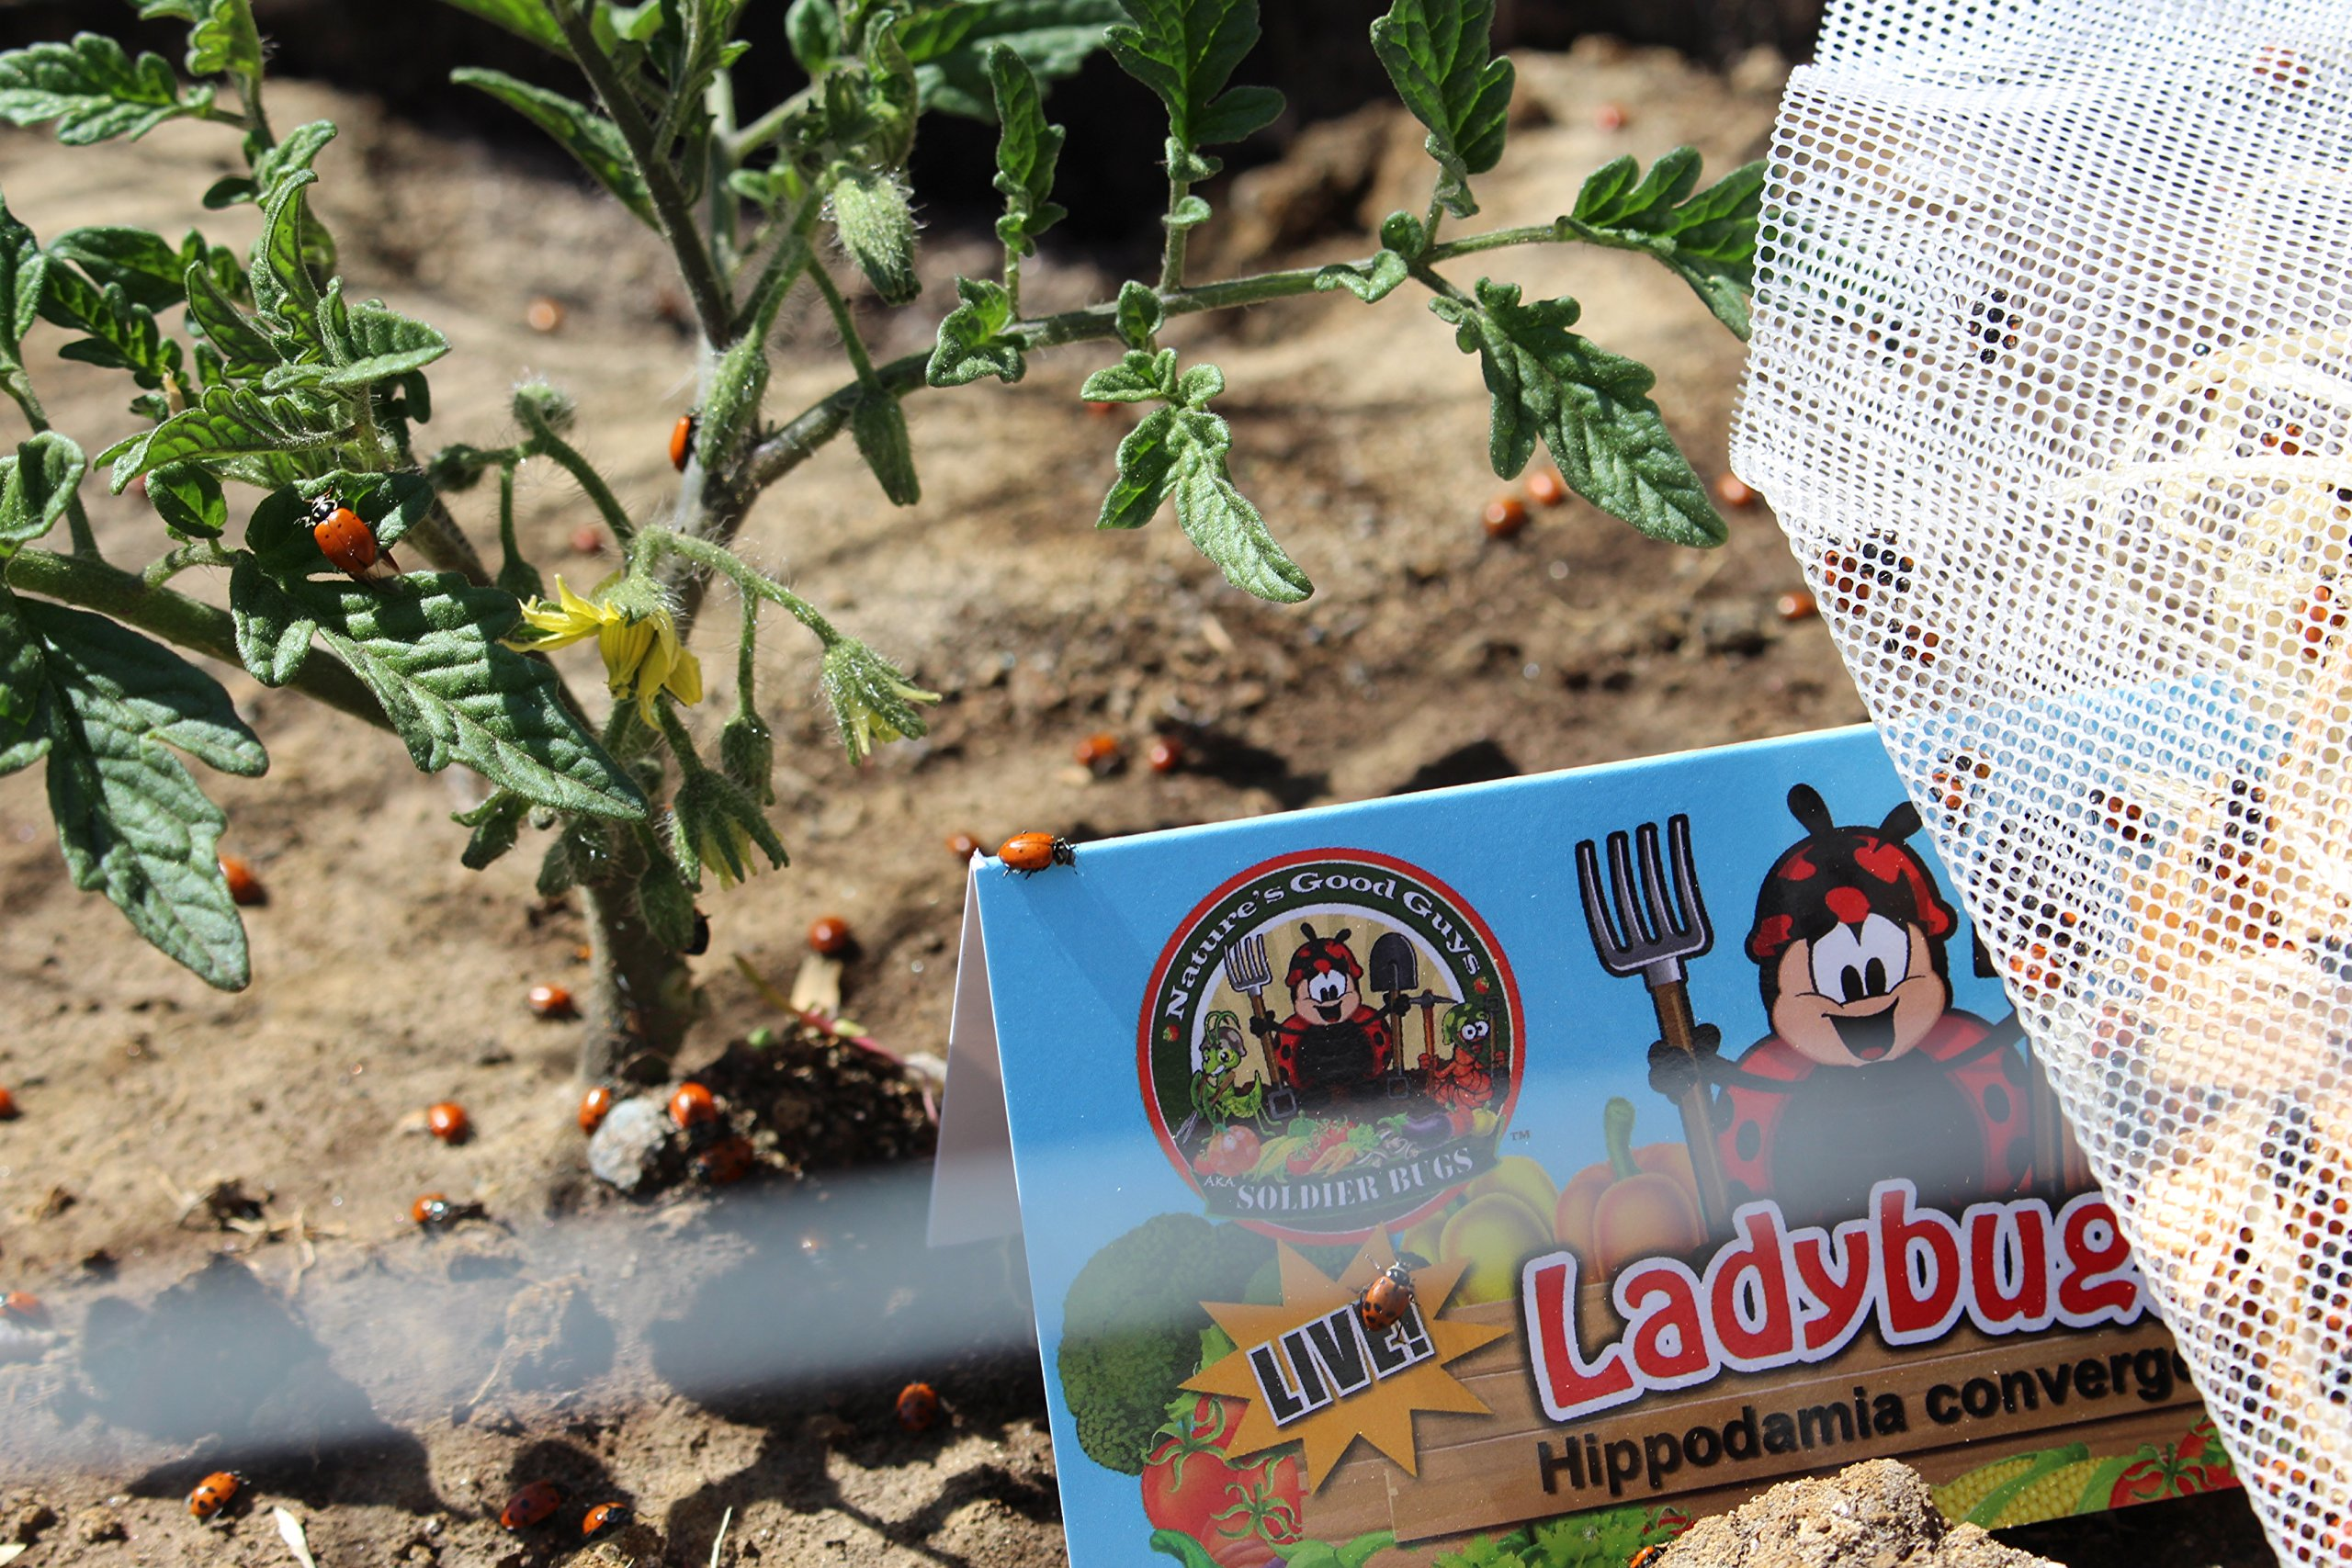 4,500 Live Ladybugs - Good Bugs - Guaranteed Live Delivery!